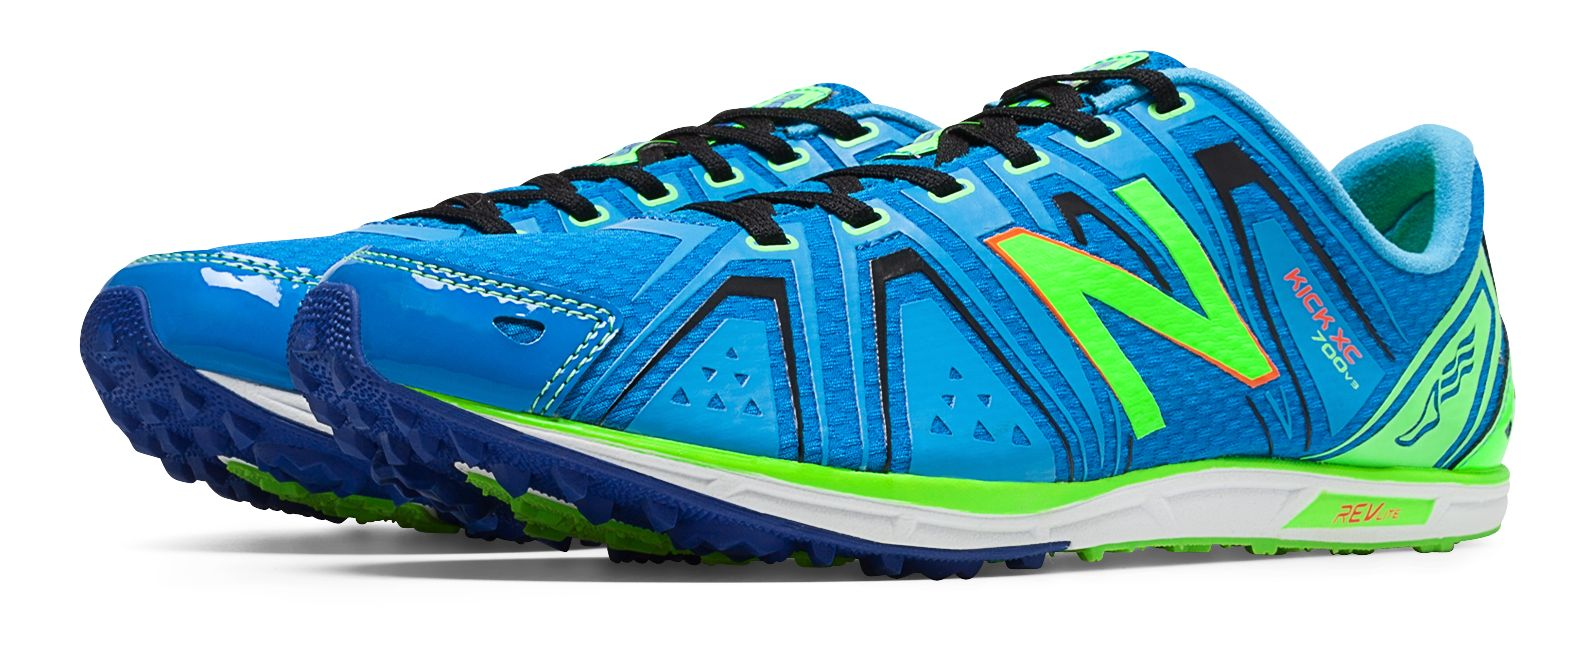 Men\u0027s XC700v3 Spikeless